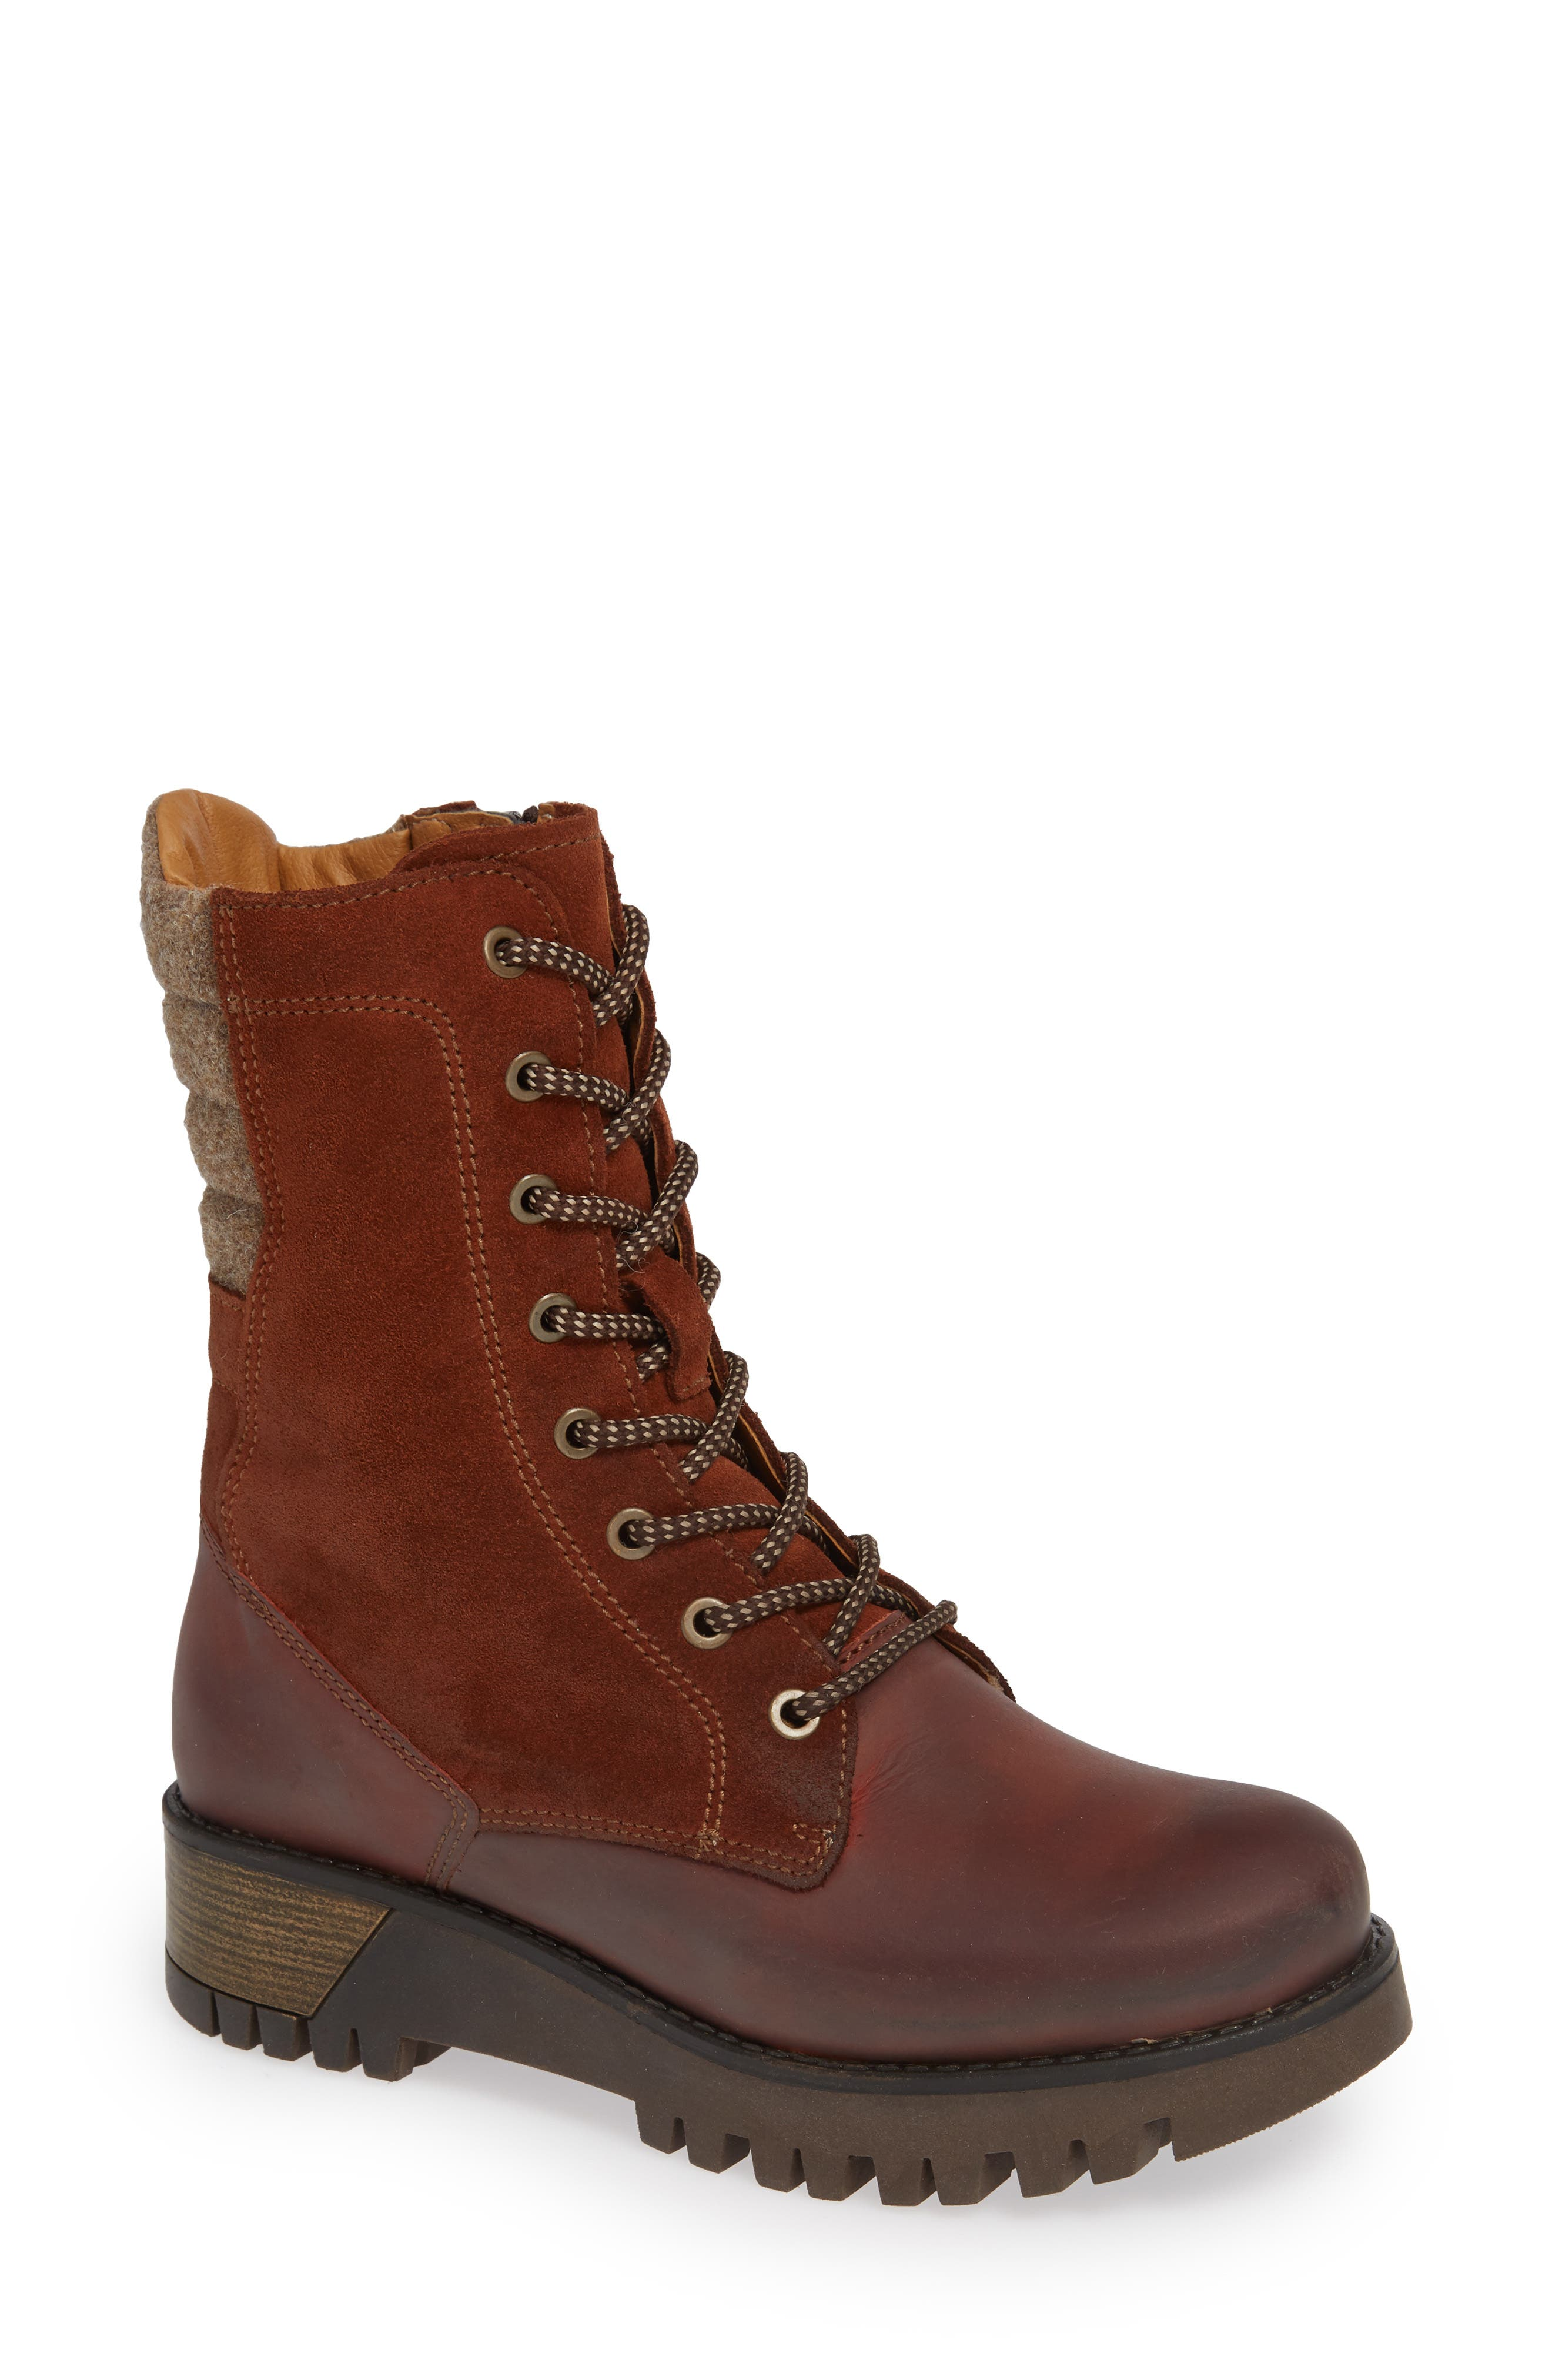 BOS. & CO. Guide Waterproof & Insulated Hiking Boot, Main, color, RUST SUEDE